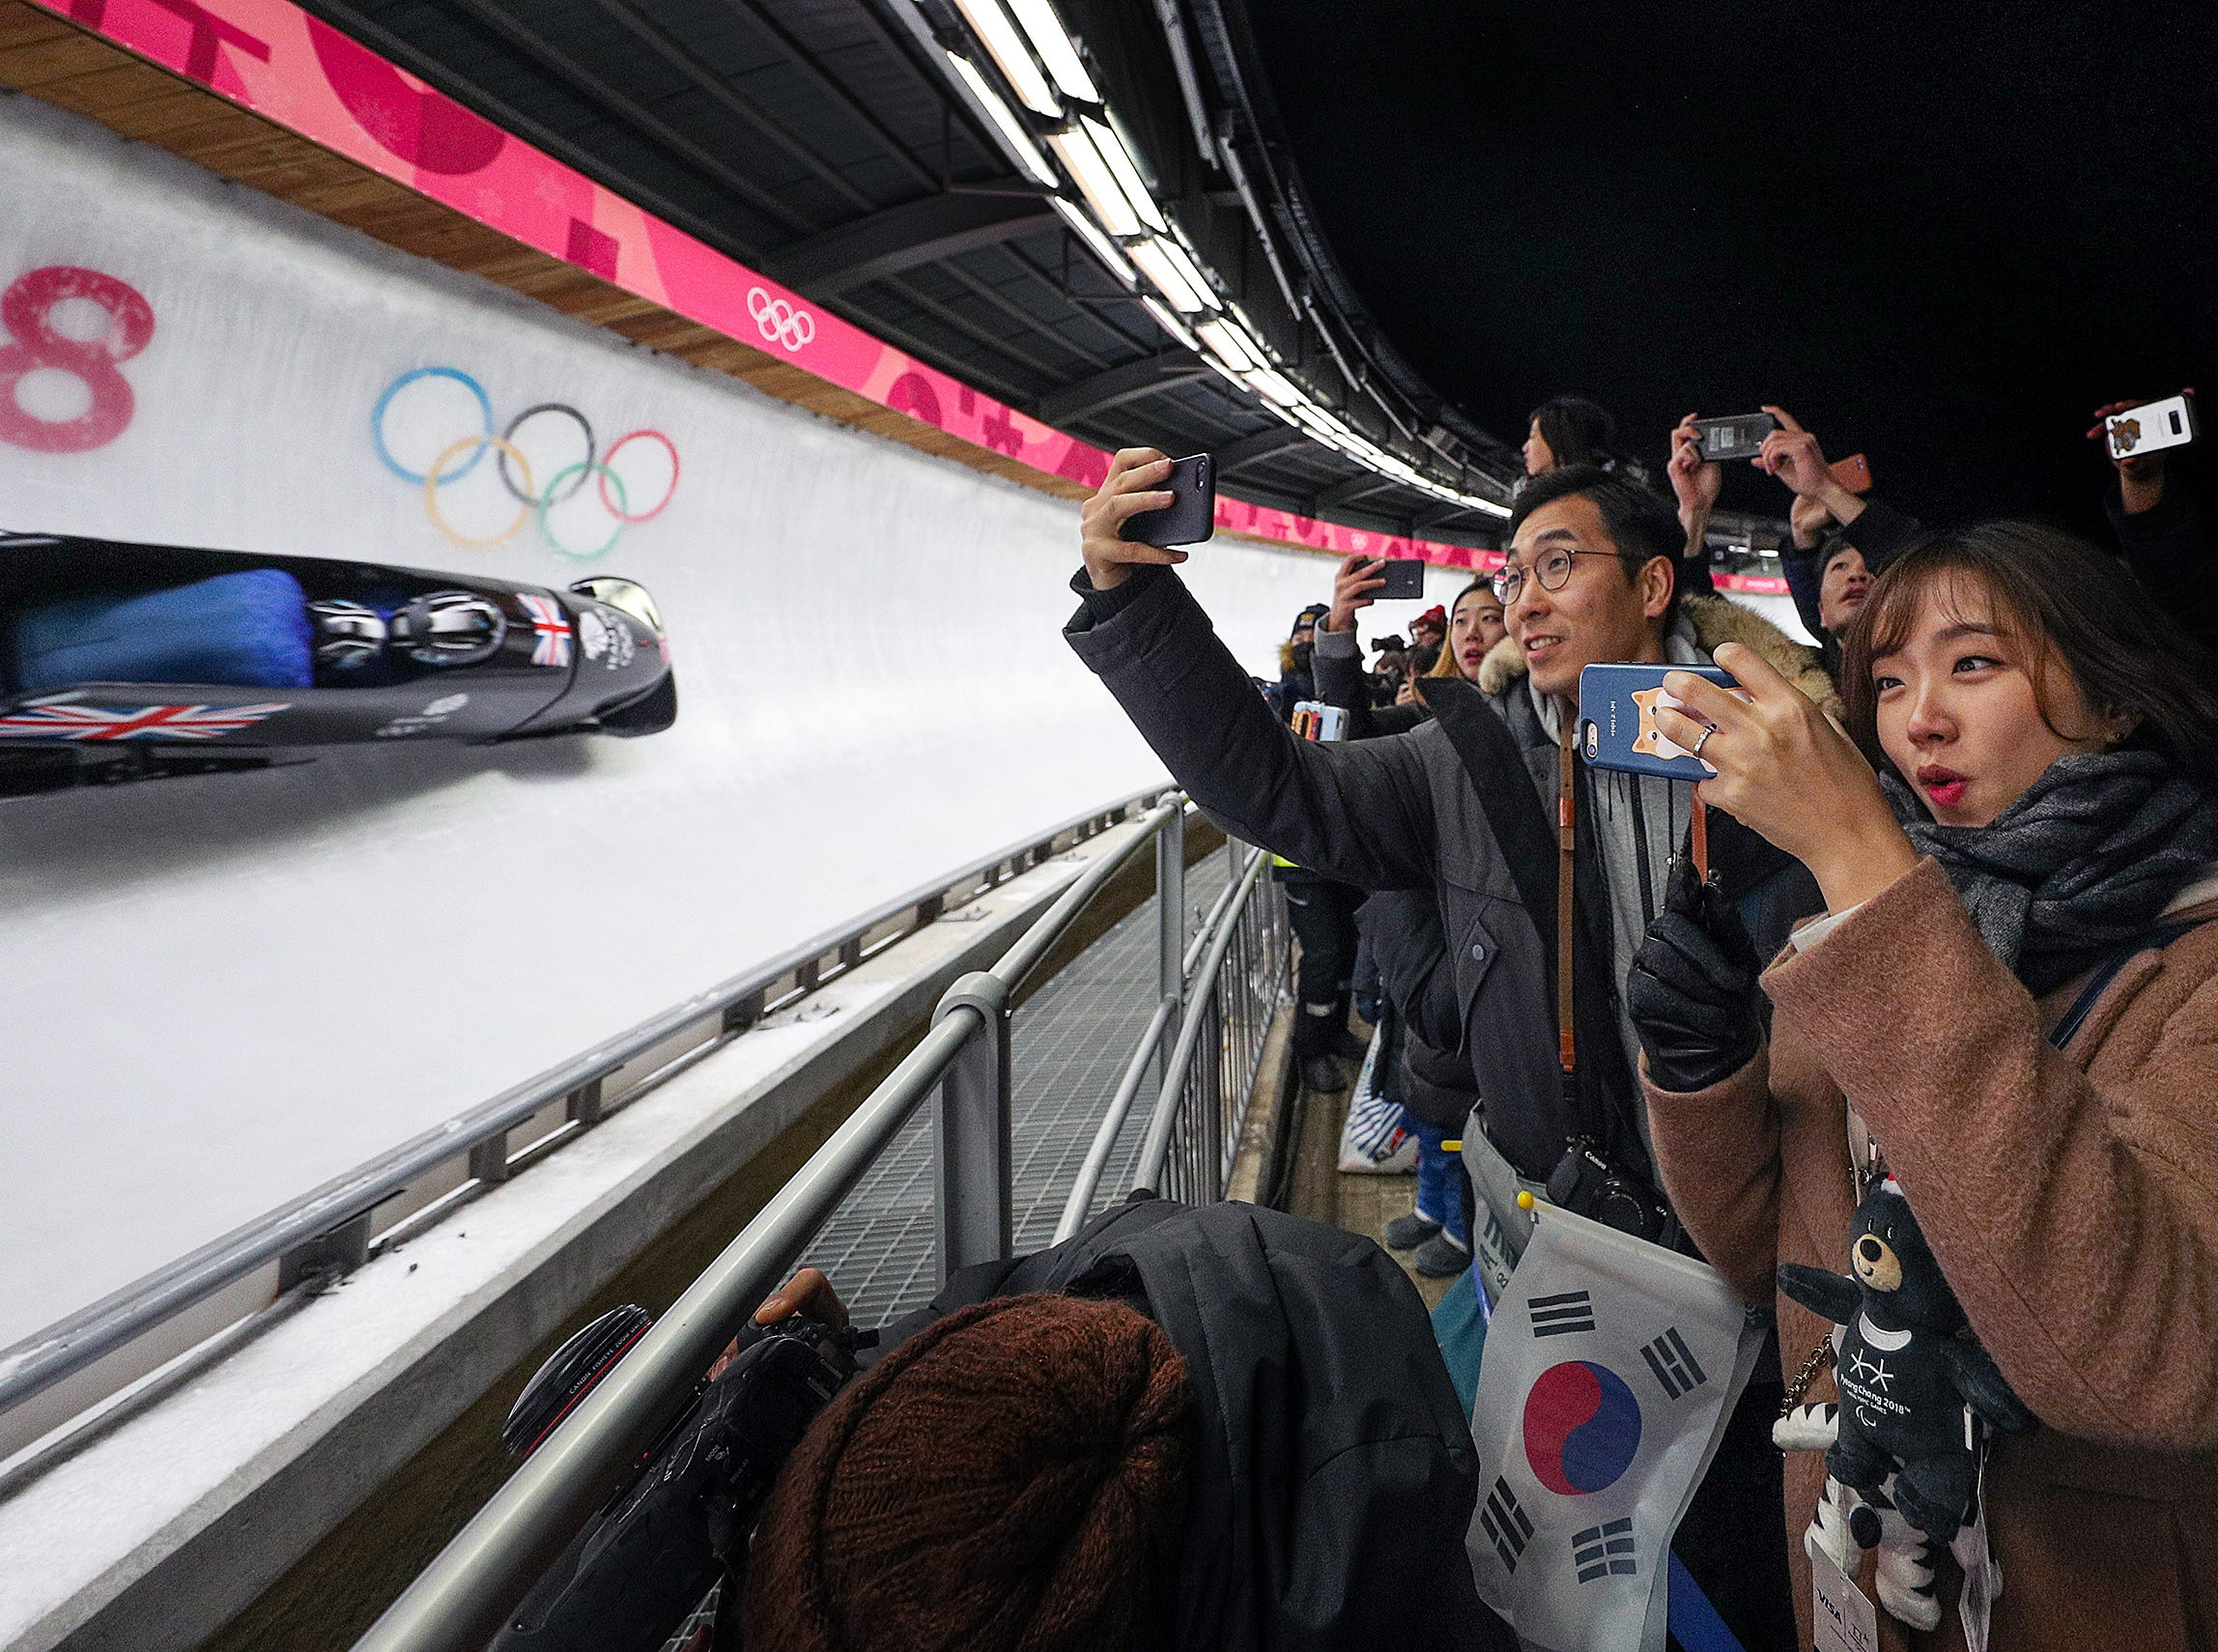 Feb 18, 2018; Pyeongchang, South Korea; Boblsleigh fans watch as Great Britain's Brad Hall and Joel Fearson round turn #14 during the Bobsleigh Mens 2-Man Competition Run 1 at the Pyeongchang 2018 Olympic Winter Games at Olympic Sliding Centre. Mandatory Credit: Matt Kryger-USA TODAY Sports